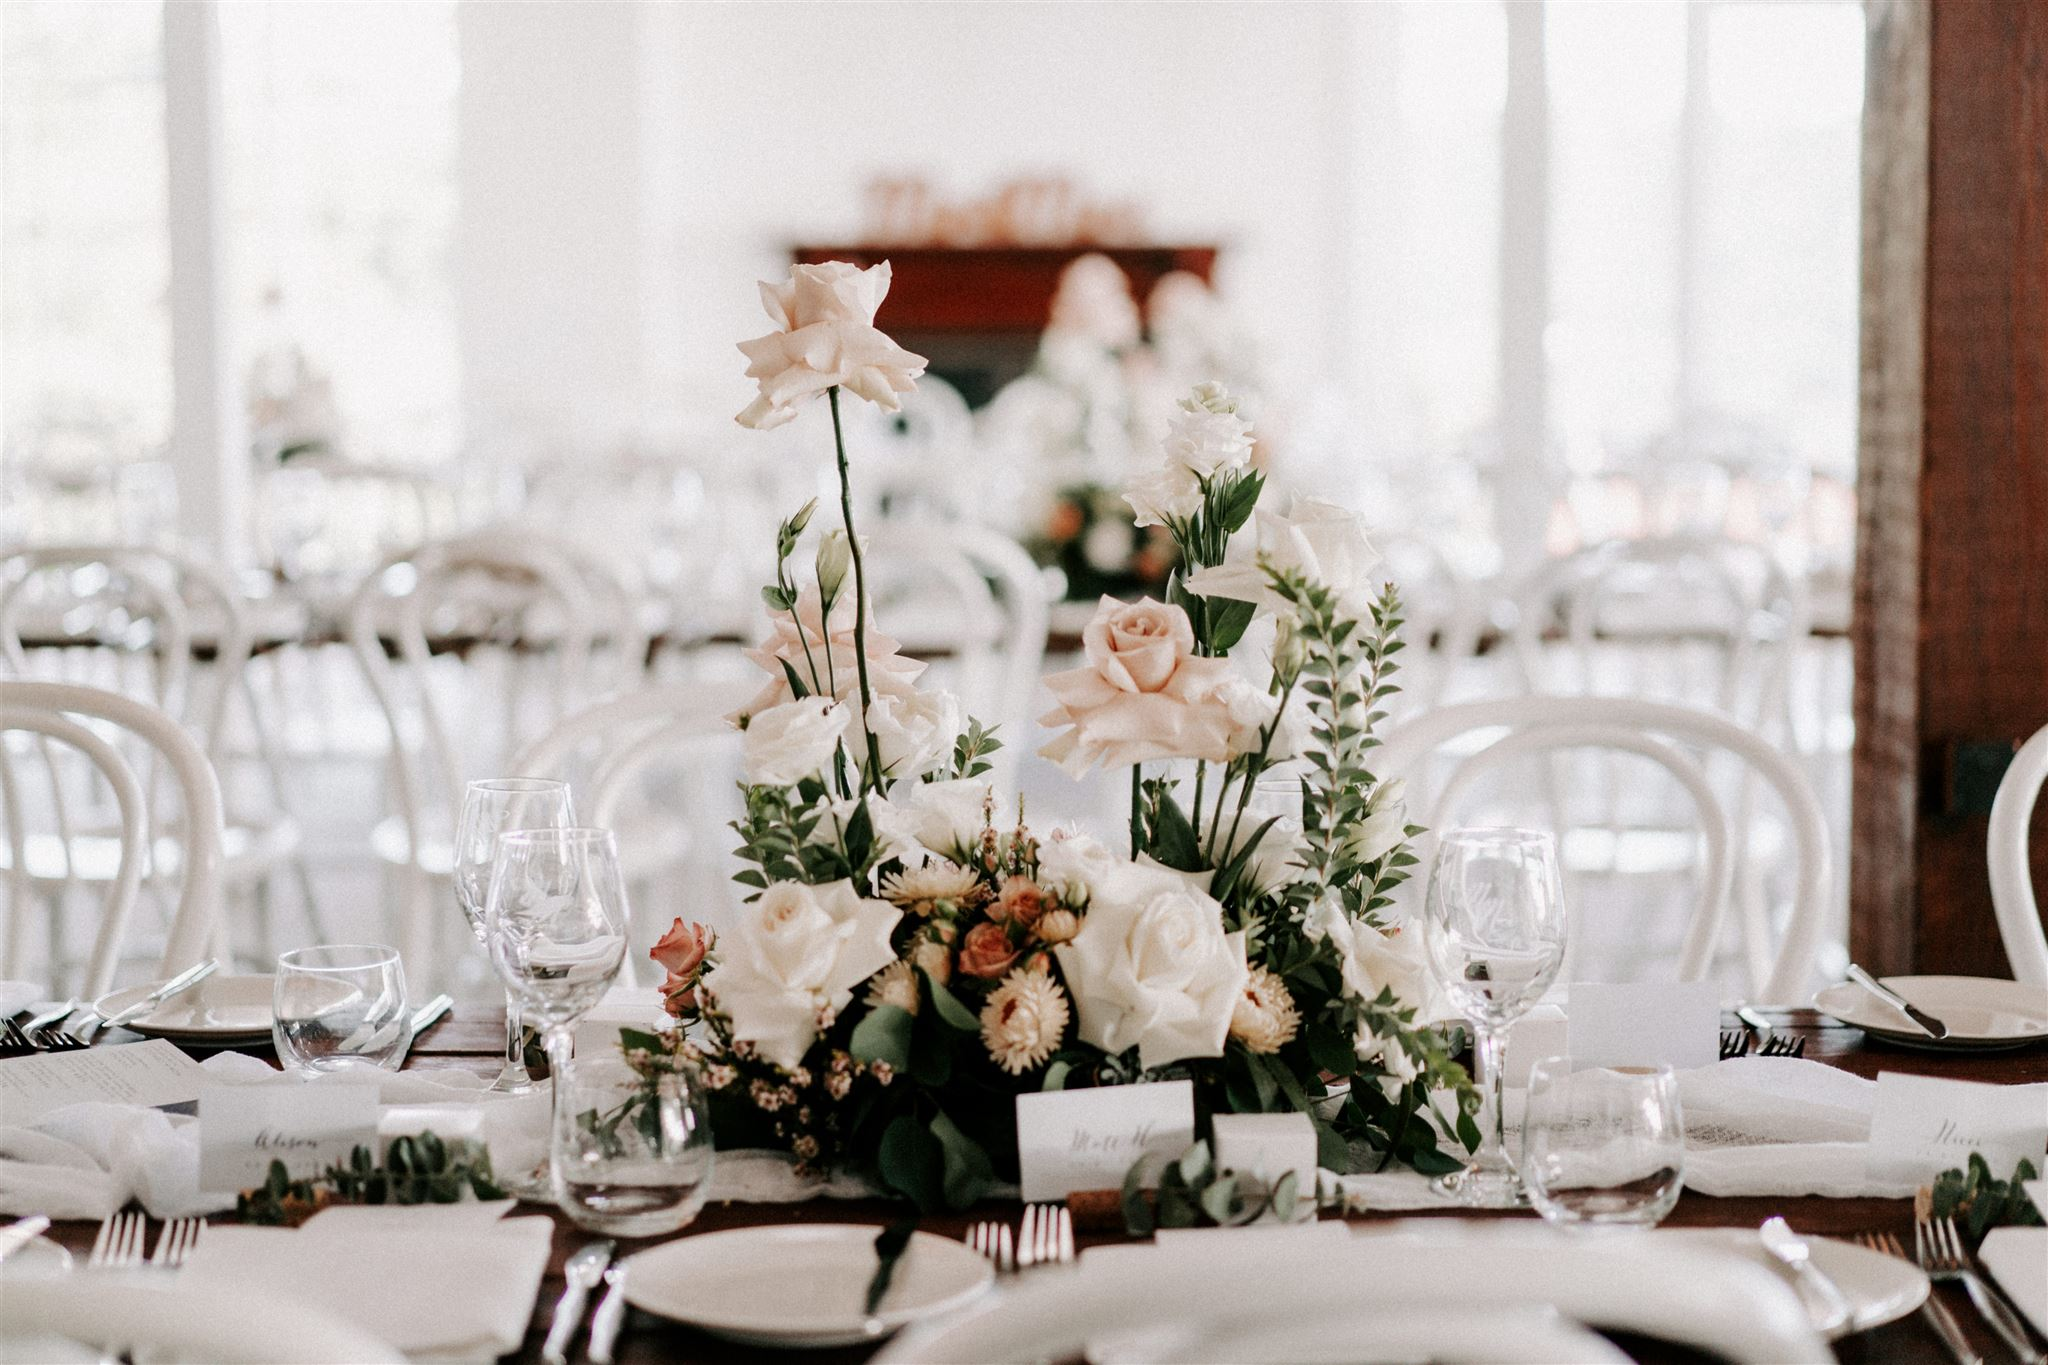 Modern table centrepieces featuring pastel toned blooms